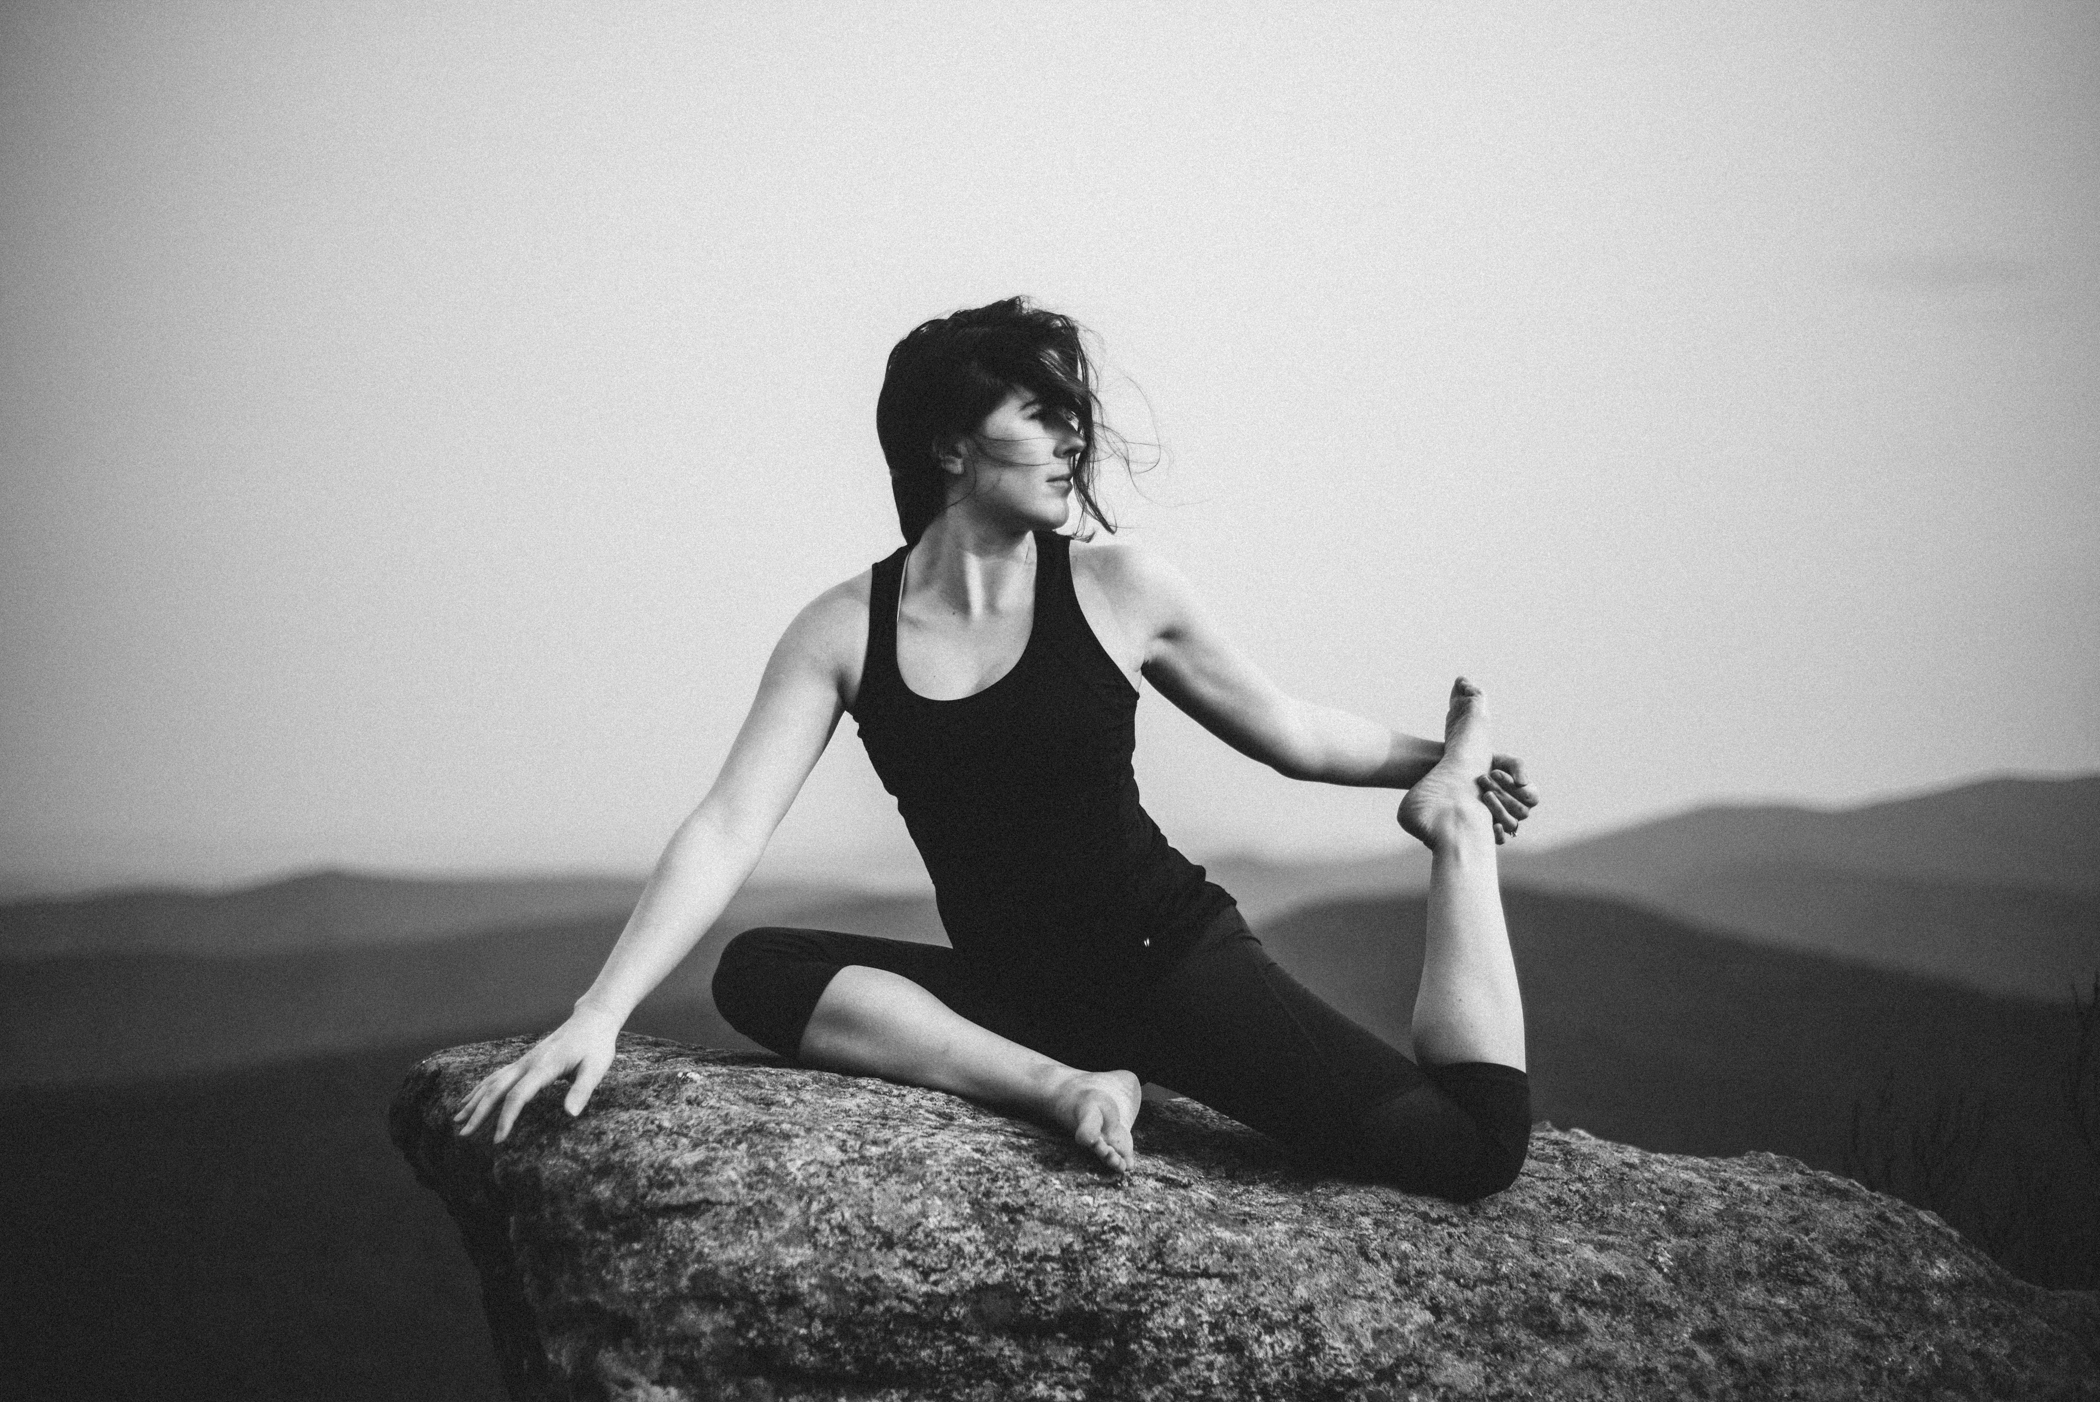 Yoga+Mountain+Top+Yoga+Portraits+at+Shenandoah+National+Park_3.jpg